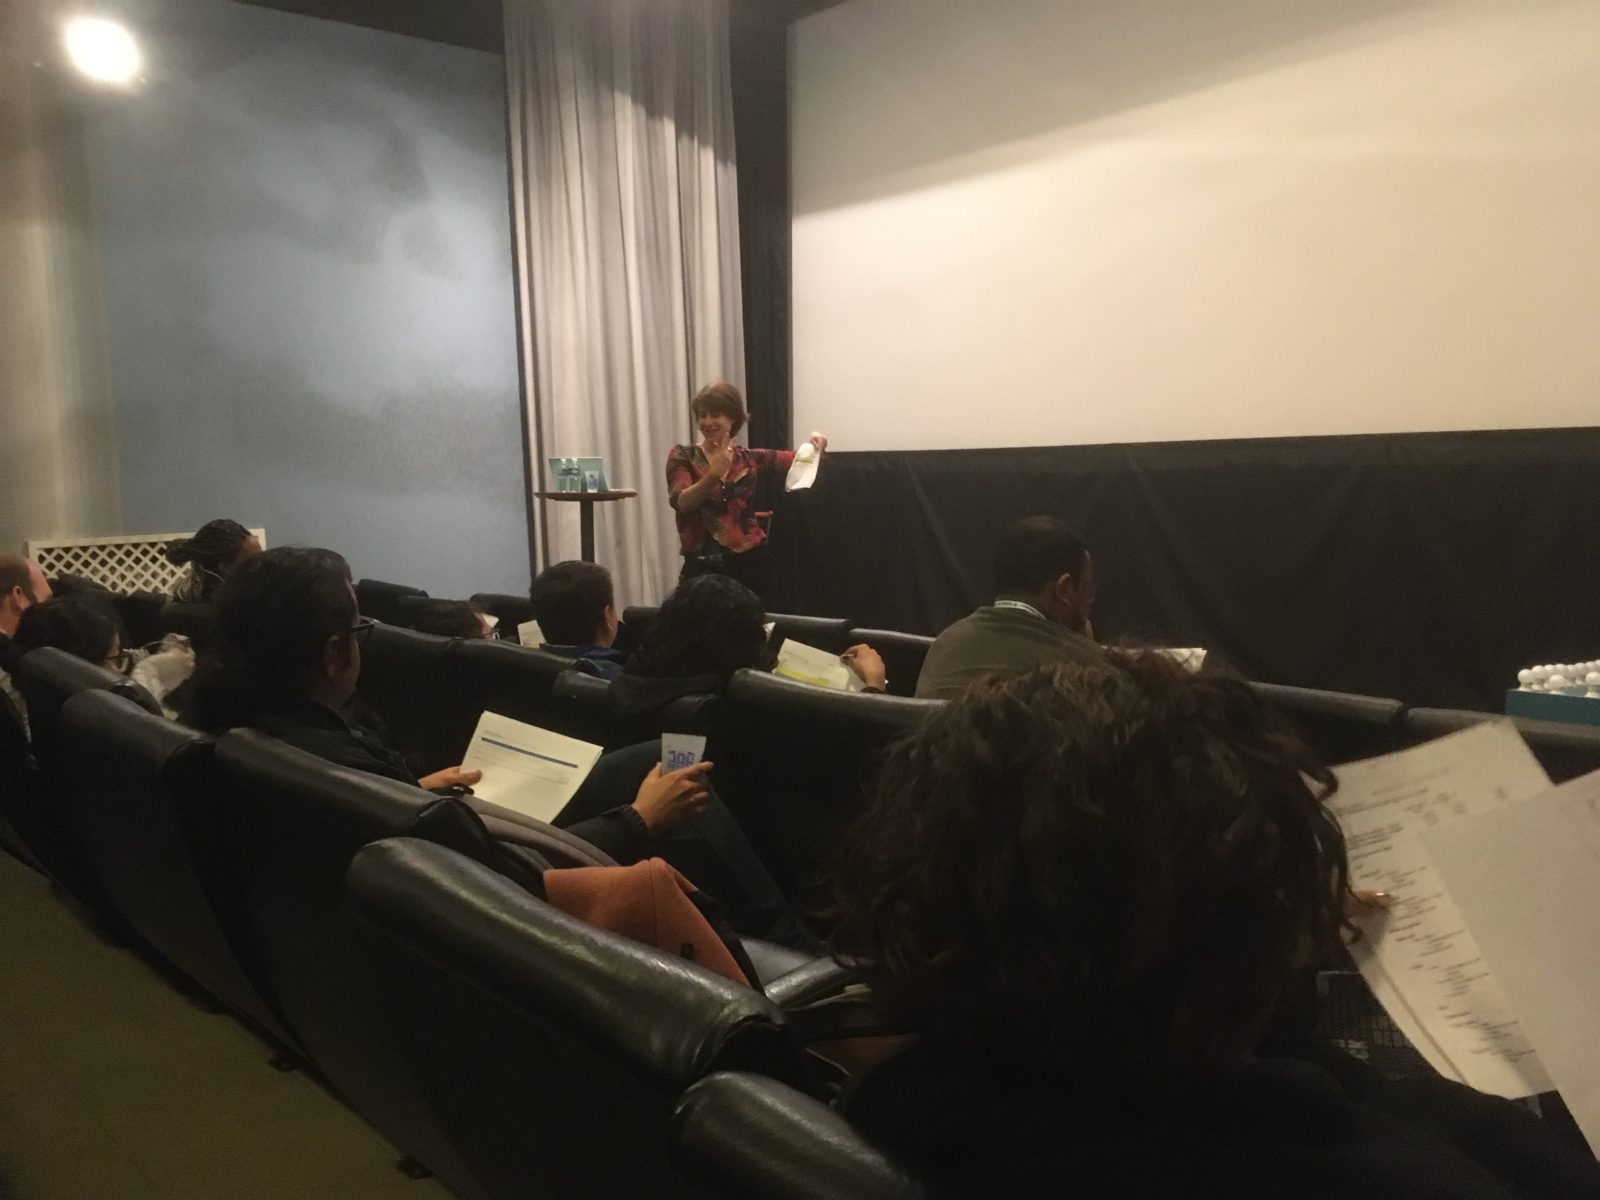 Work session around Postproduction at Le Concorde movie theater